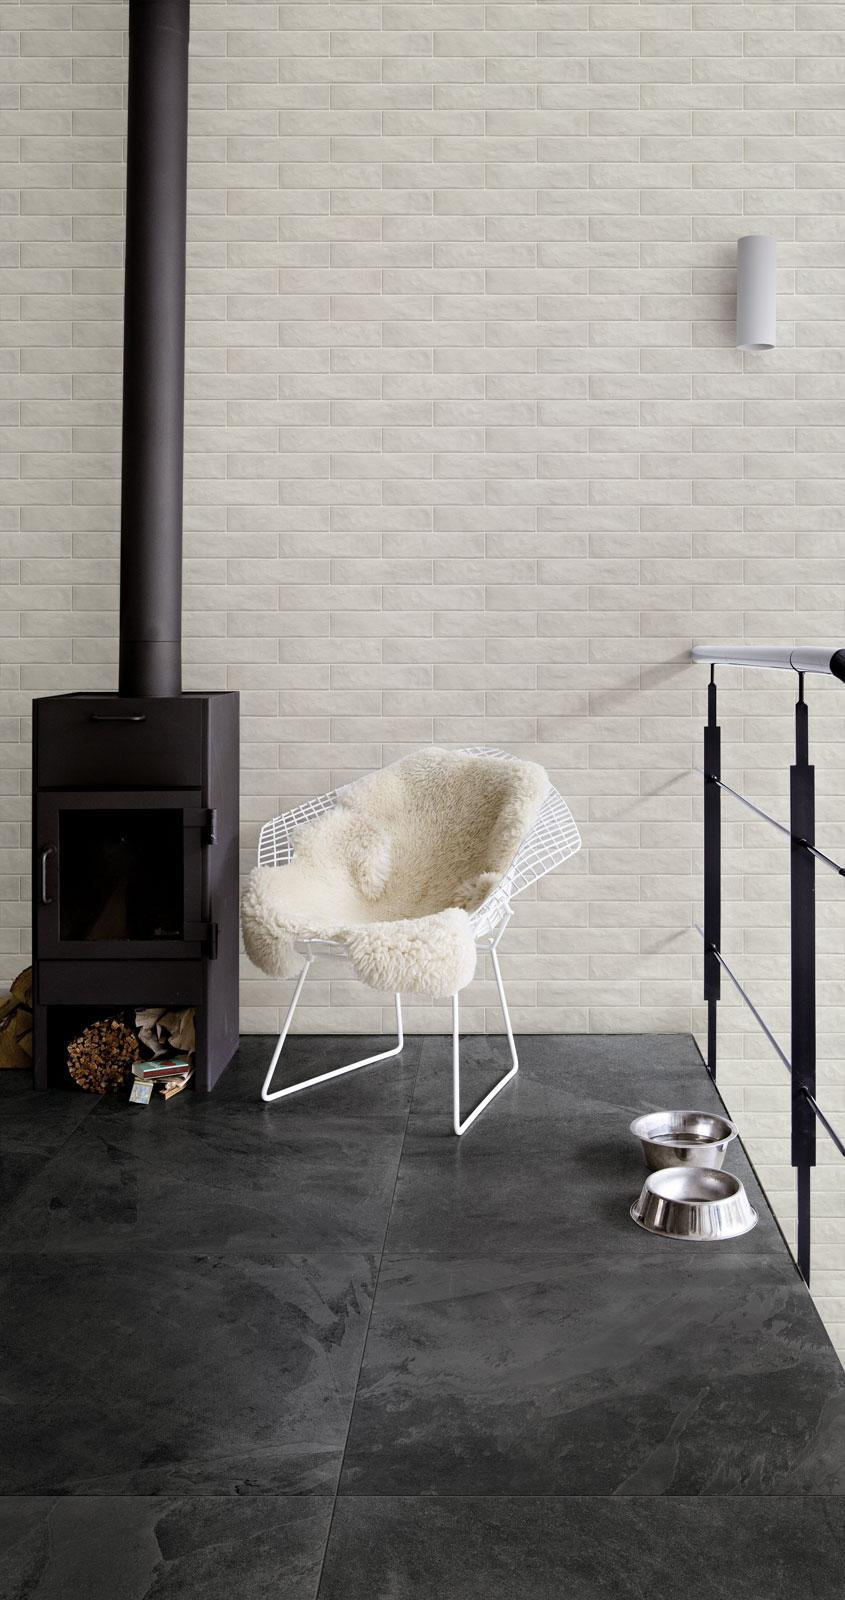 Bricco - Concrete Effect - Living Room